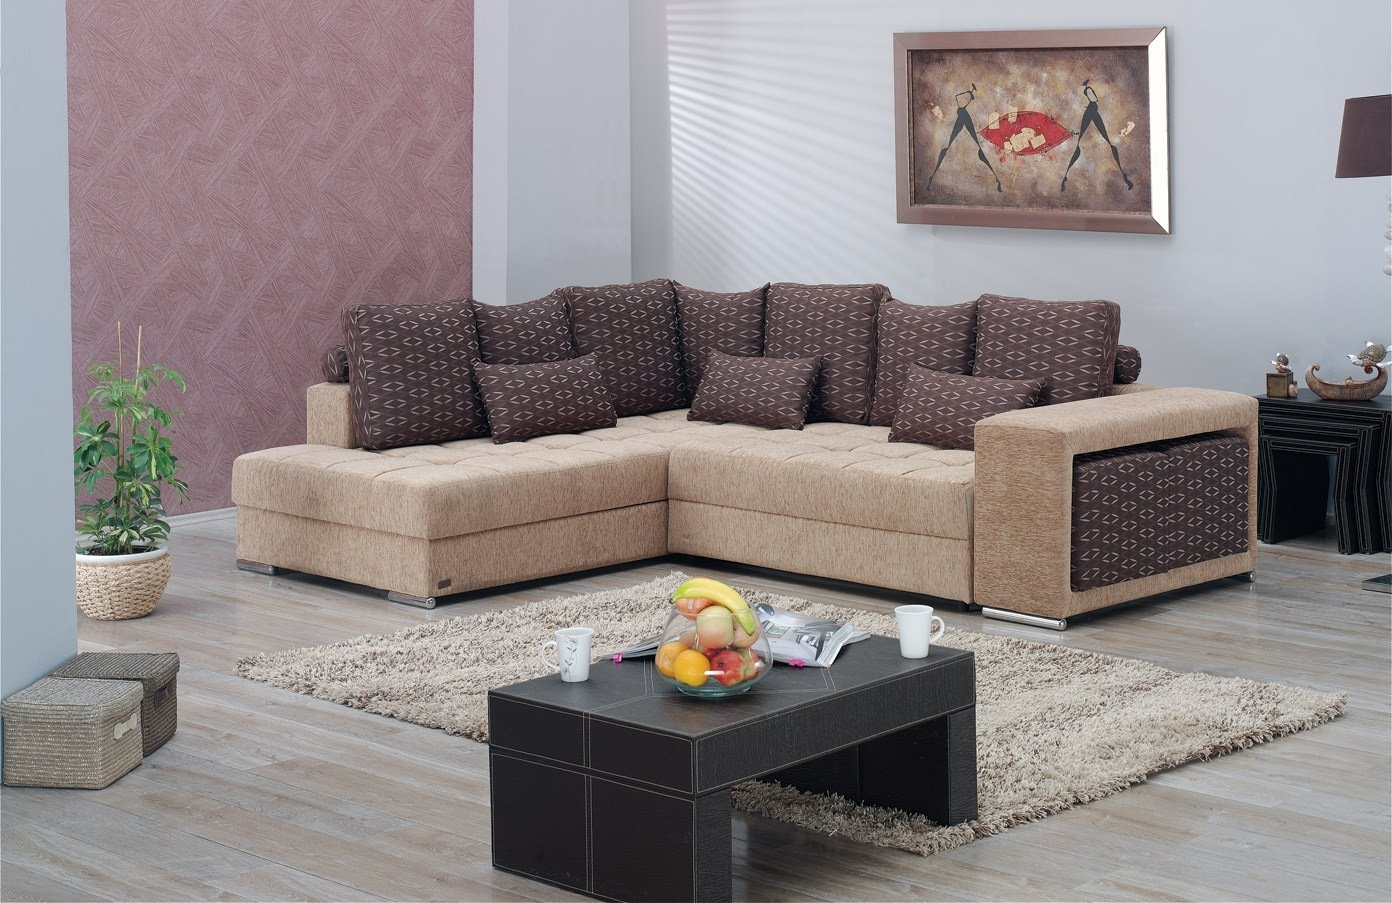 Sectional Sofas In Stock Pertaining To Well Known Sectional Sofa Design: Best Sectional Sofas Los Angeles Sofa (View 18 of 20)